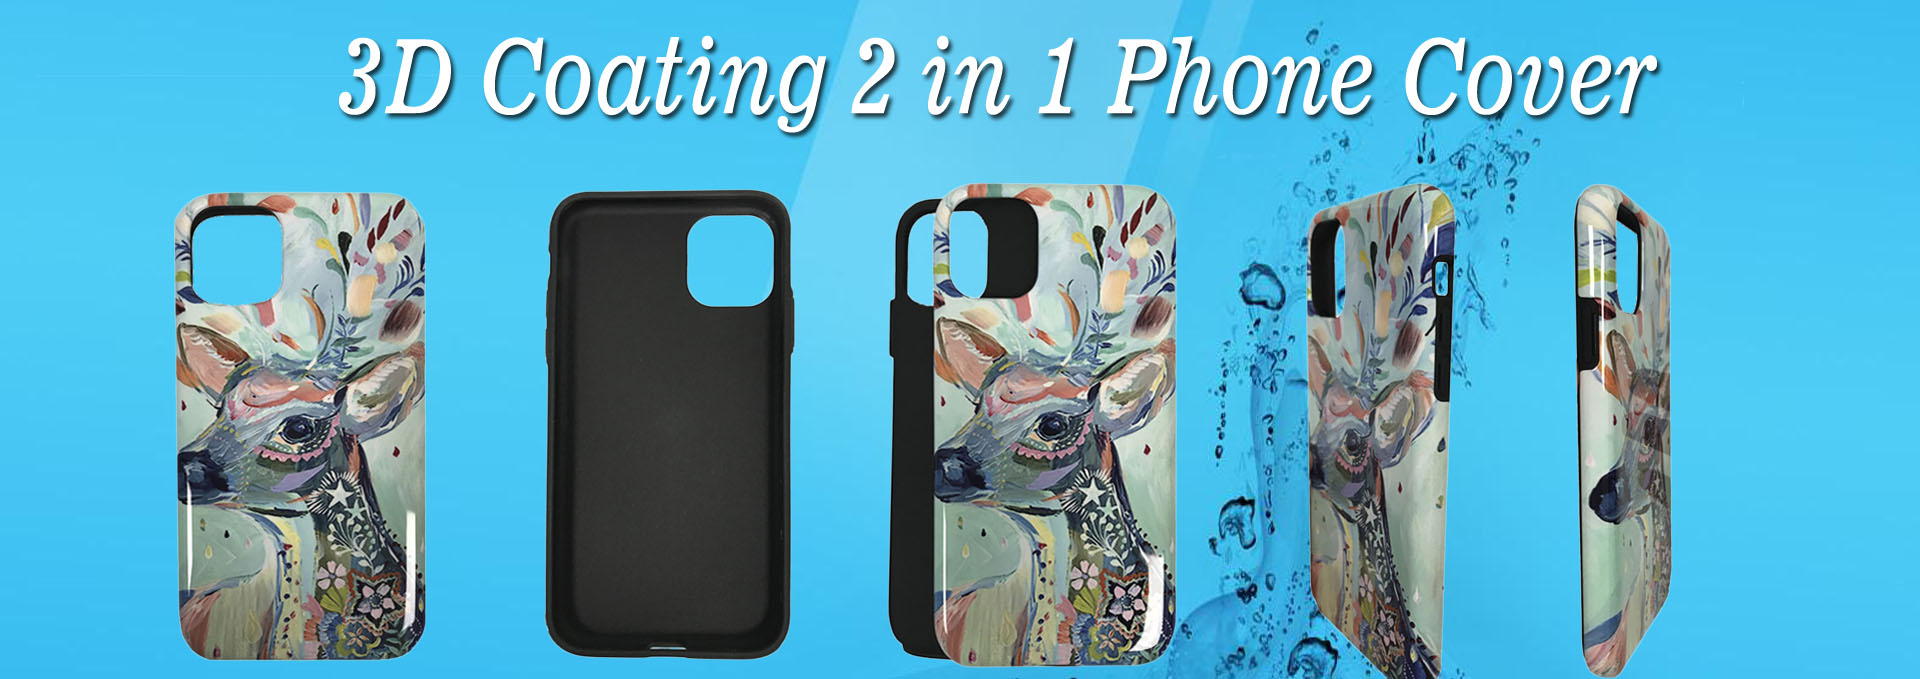 3D Coating 2 in 1 Phone Cover